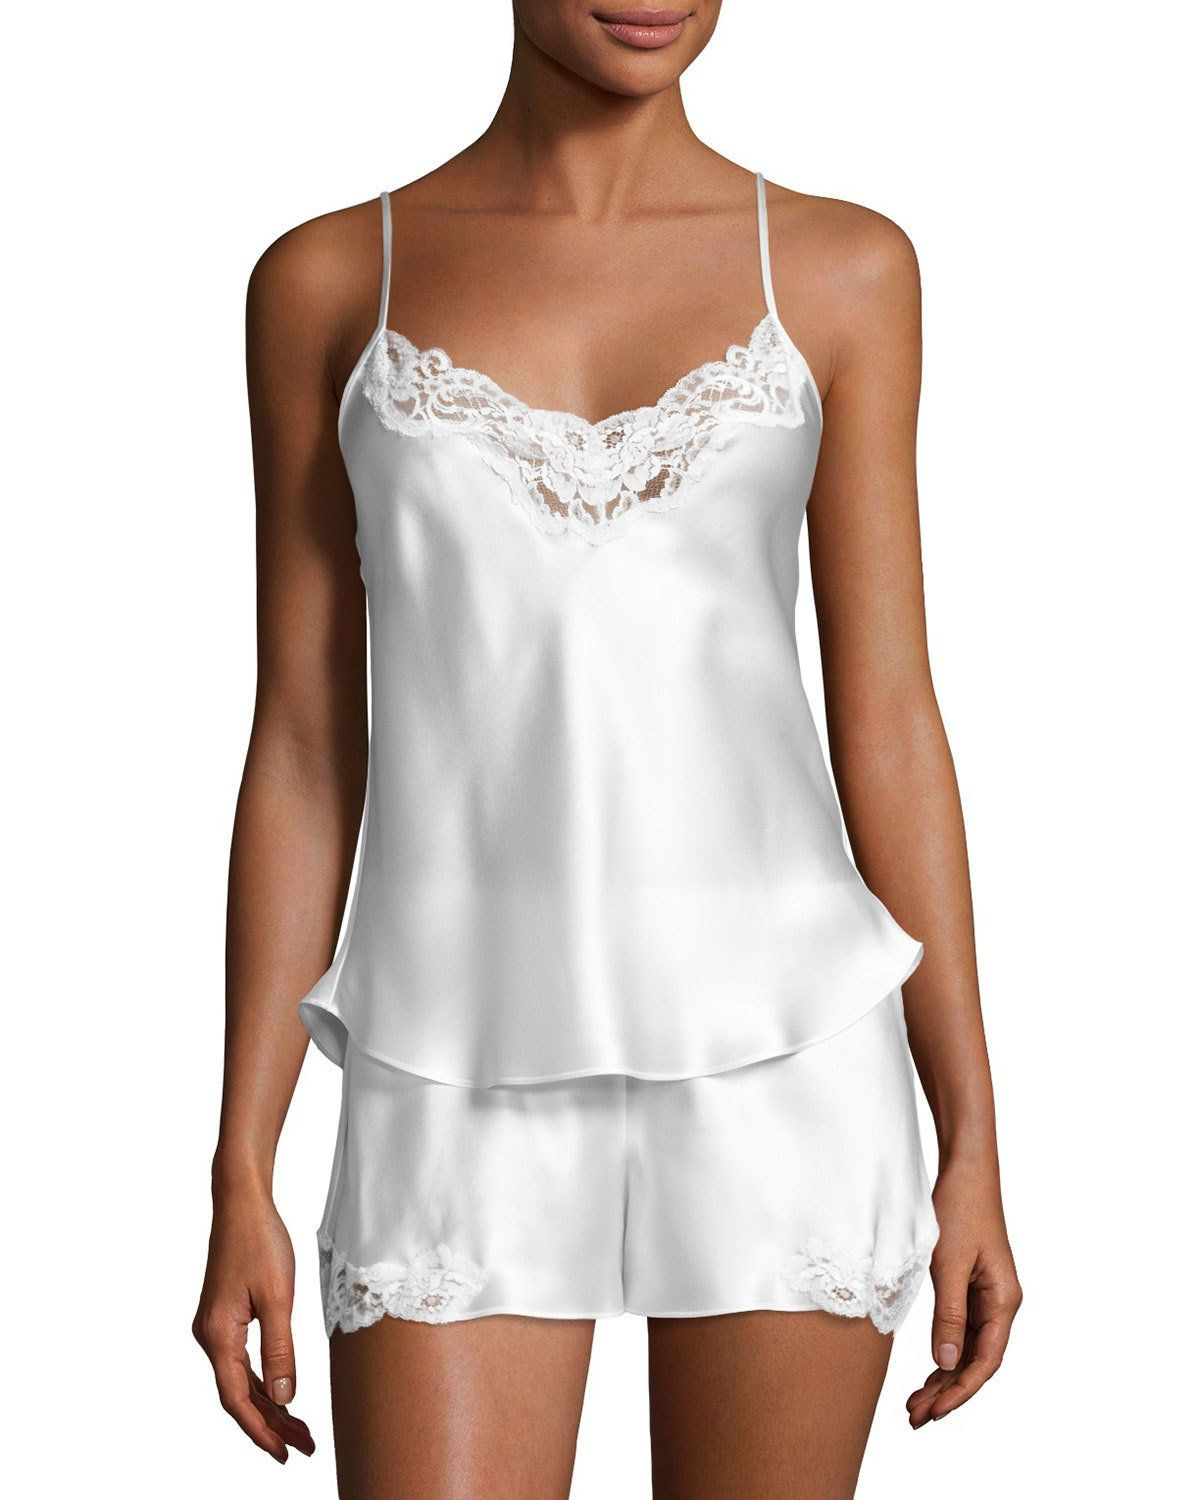 38c6339675 CHRISTINE DESIGNS Bijoux Silk Satin Cami   Short Pajamas Set White  220  FREE S   H (Compare Elsewhere at  250 + S   H). Weekday Order Pick Up also  Available ...